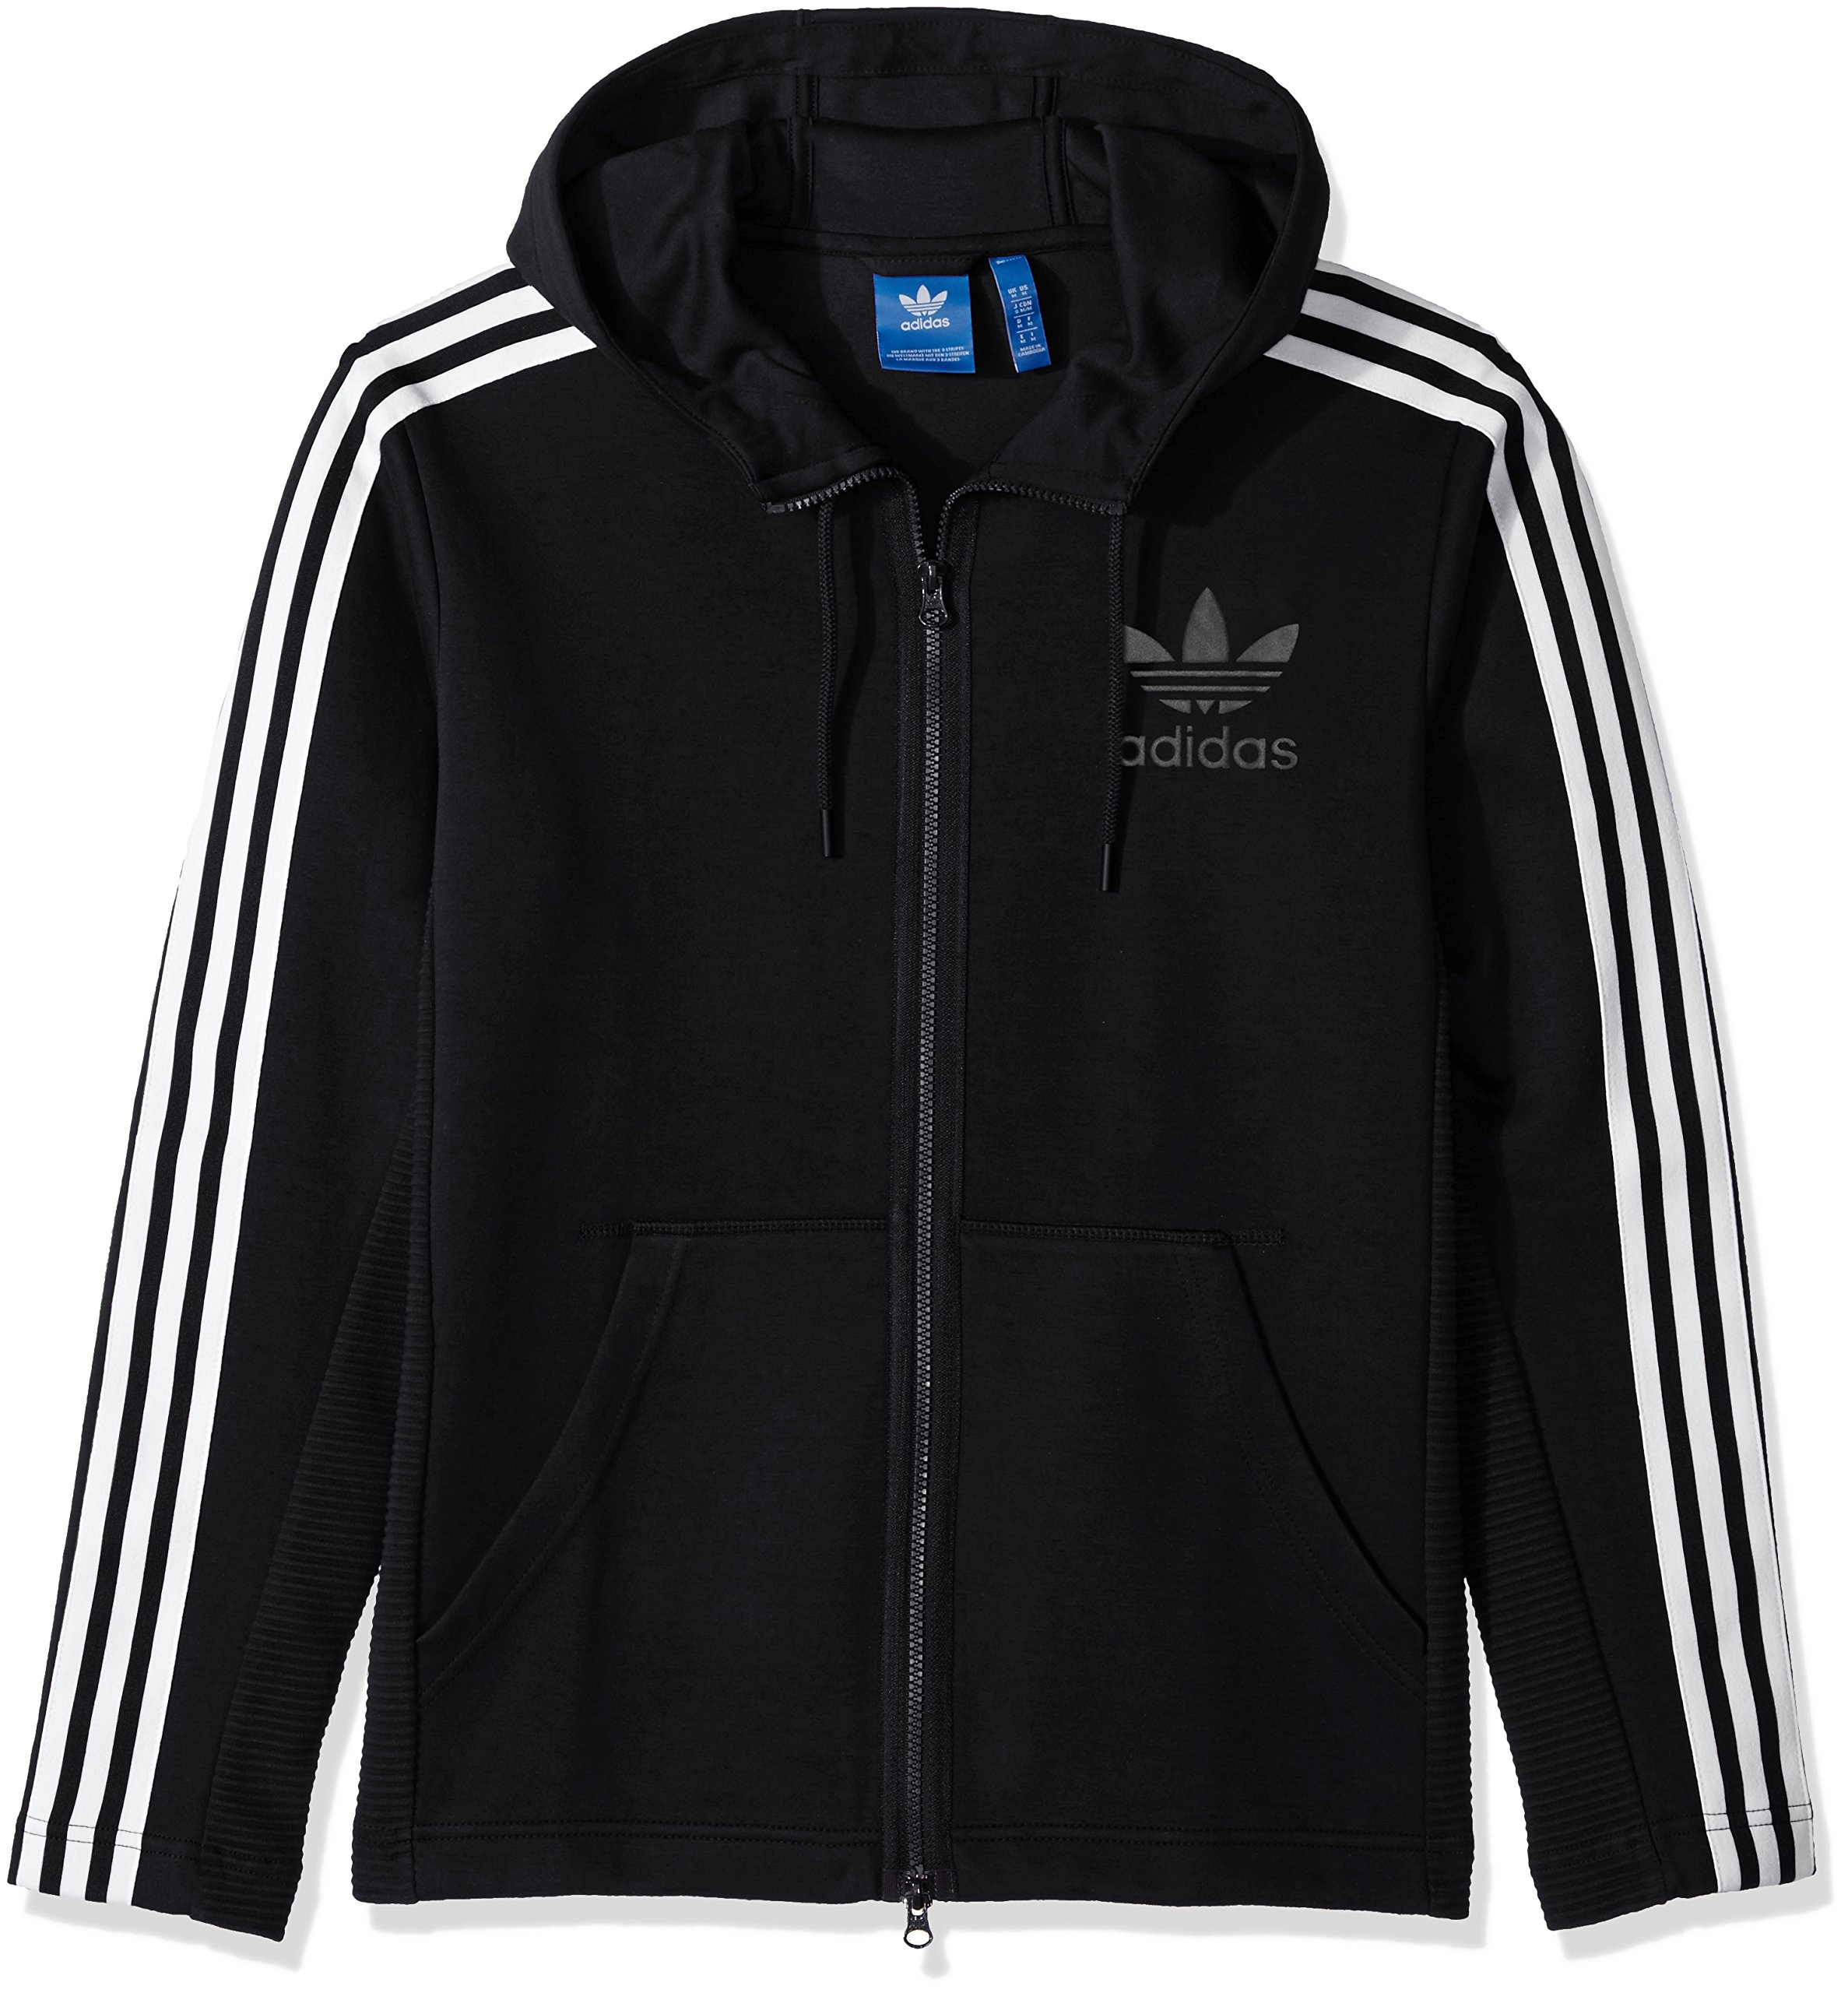 adidas Originals Men's Outerwear Curated Full Zip Jacket, Black, XX-Large by adidas Originals (Image #1)